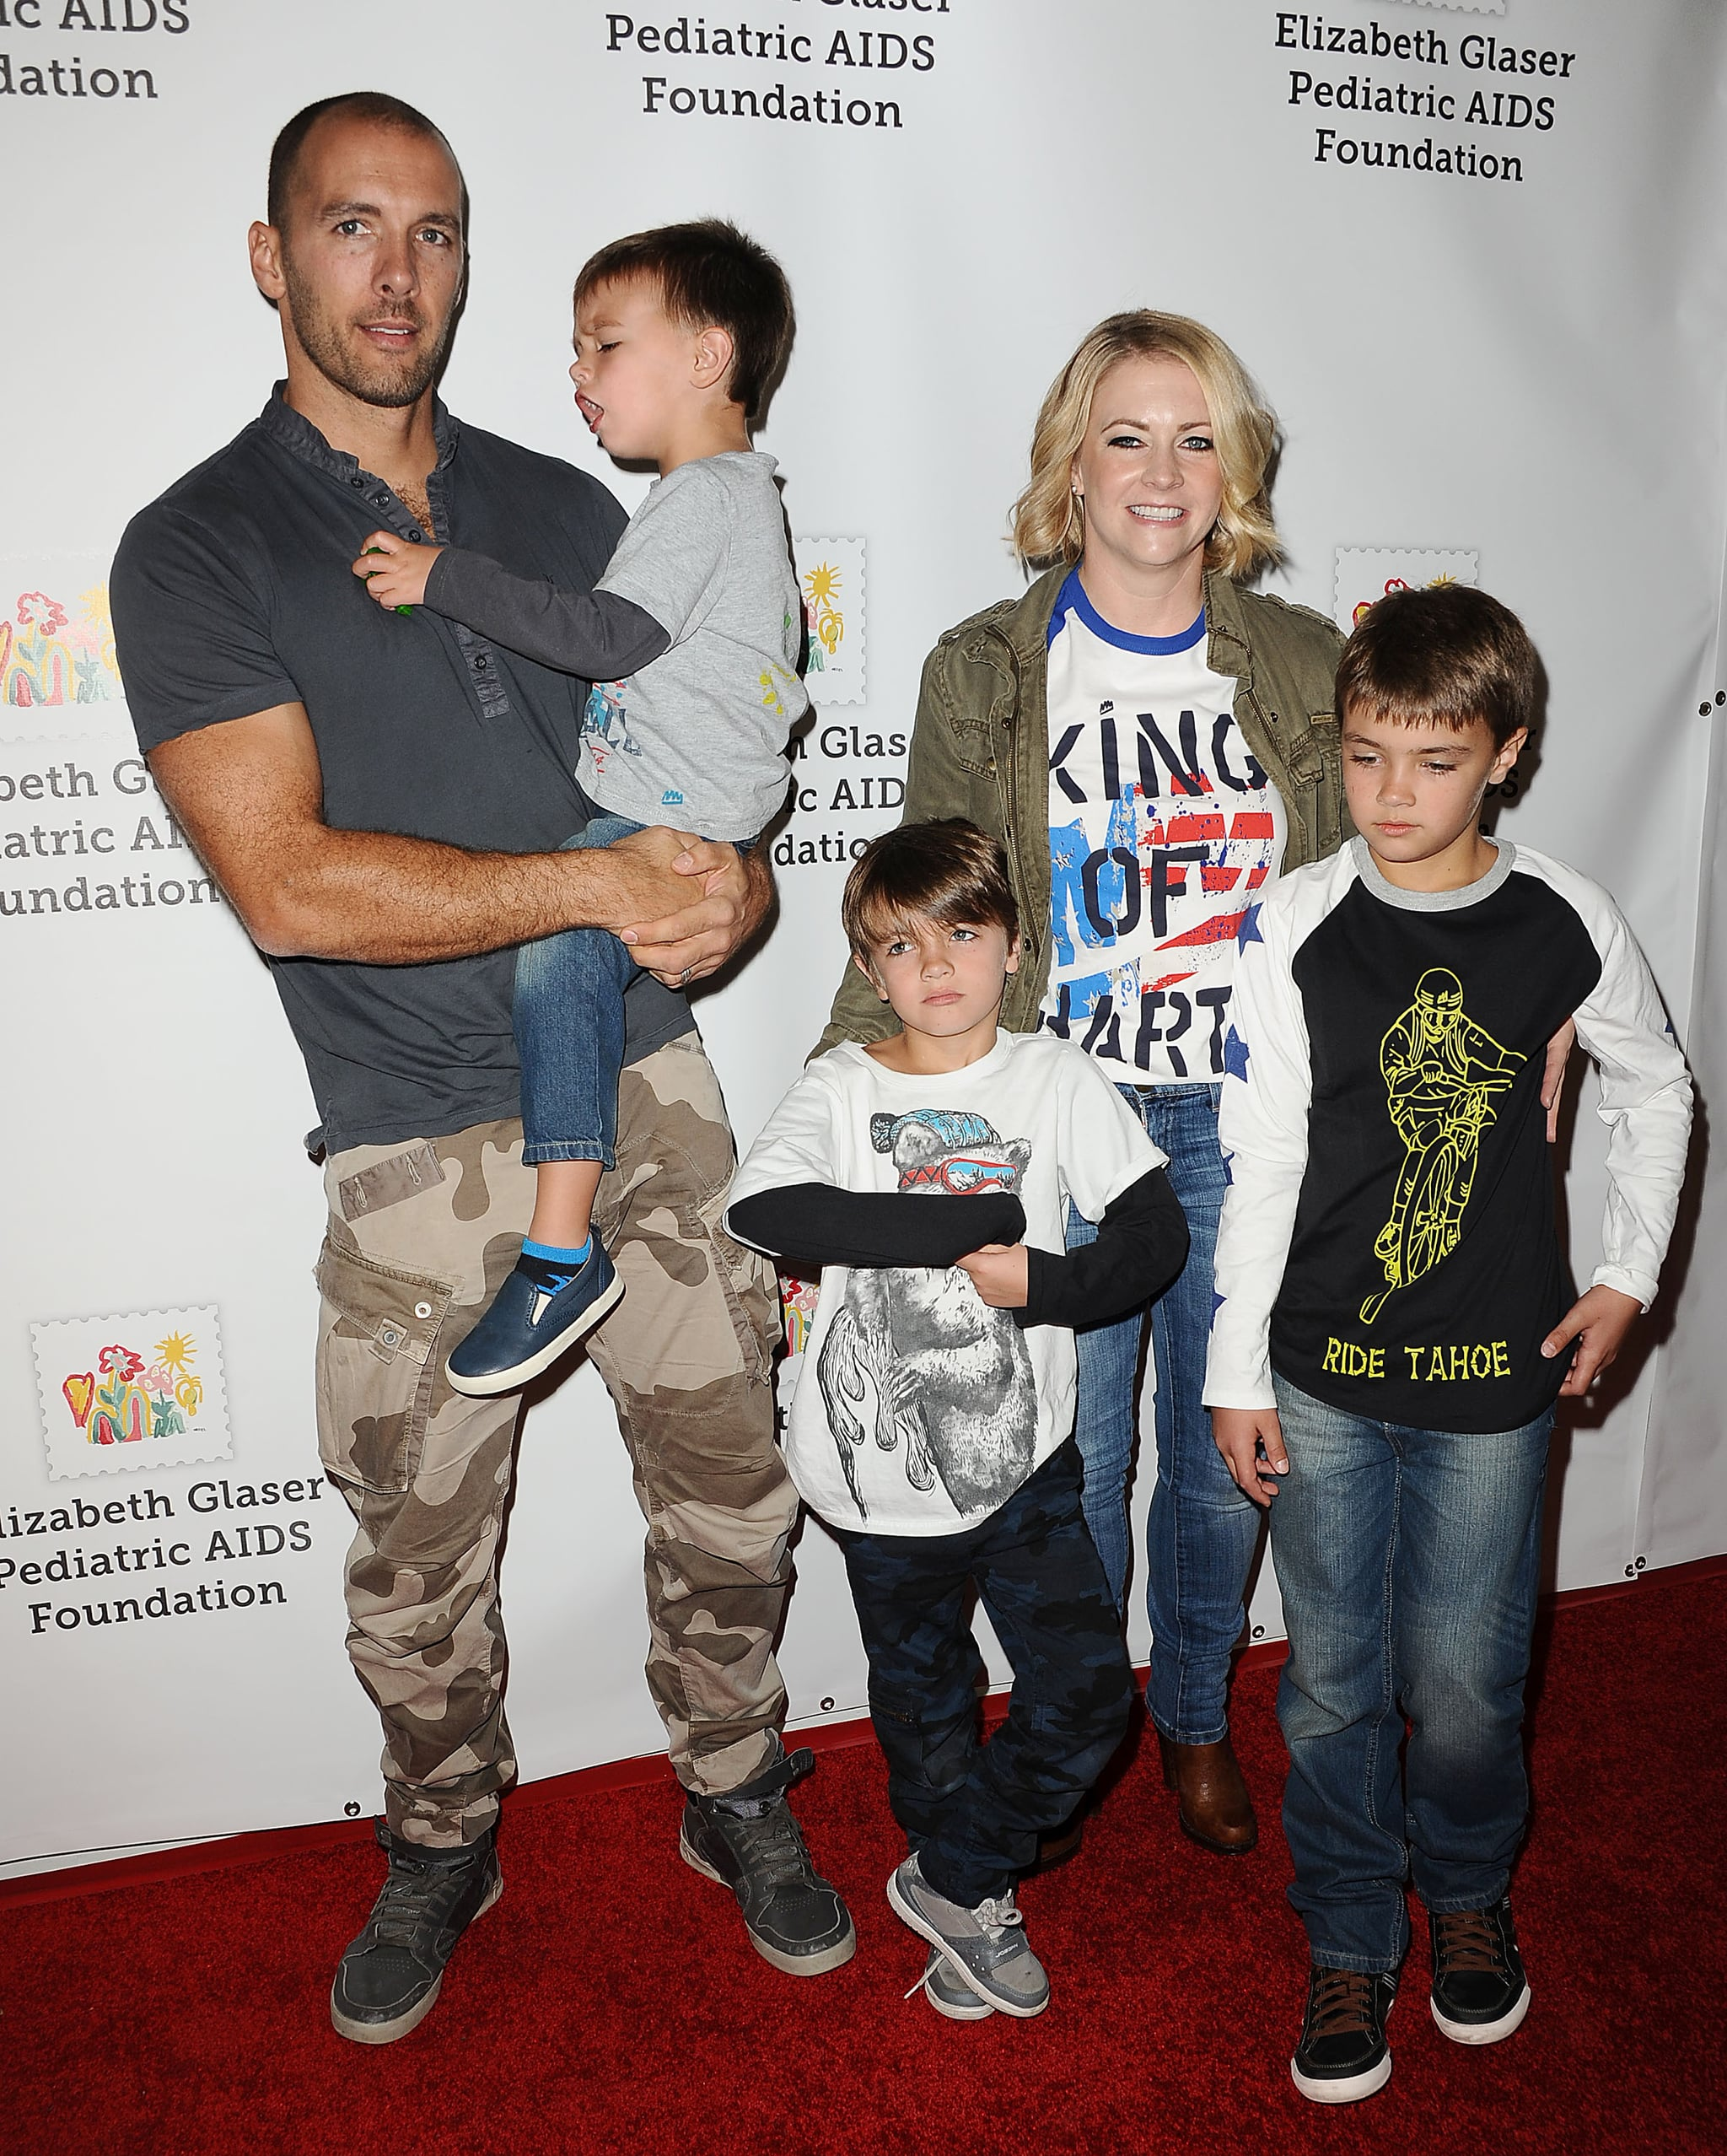 CULVER CITY, CA - OCTOBER 25: Actress Melissa Joan Hart with husband Mark Wilkerson and their children Braydon Hart Wilkerson, Mason Walter Wilkerson, Tucker McFadden Wilkerson attend the Elizabeth Glaser Pediatric AIDS Foundation's 26th A Time For Heroes family festival at Smashbox Studios on October 25, 2015 in Culver City, California.  (Photo by Jason LaVeris/FilmMagic)